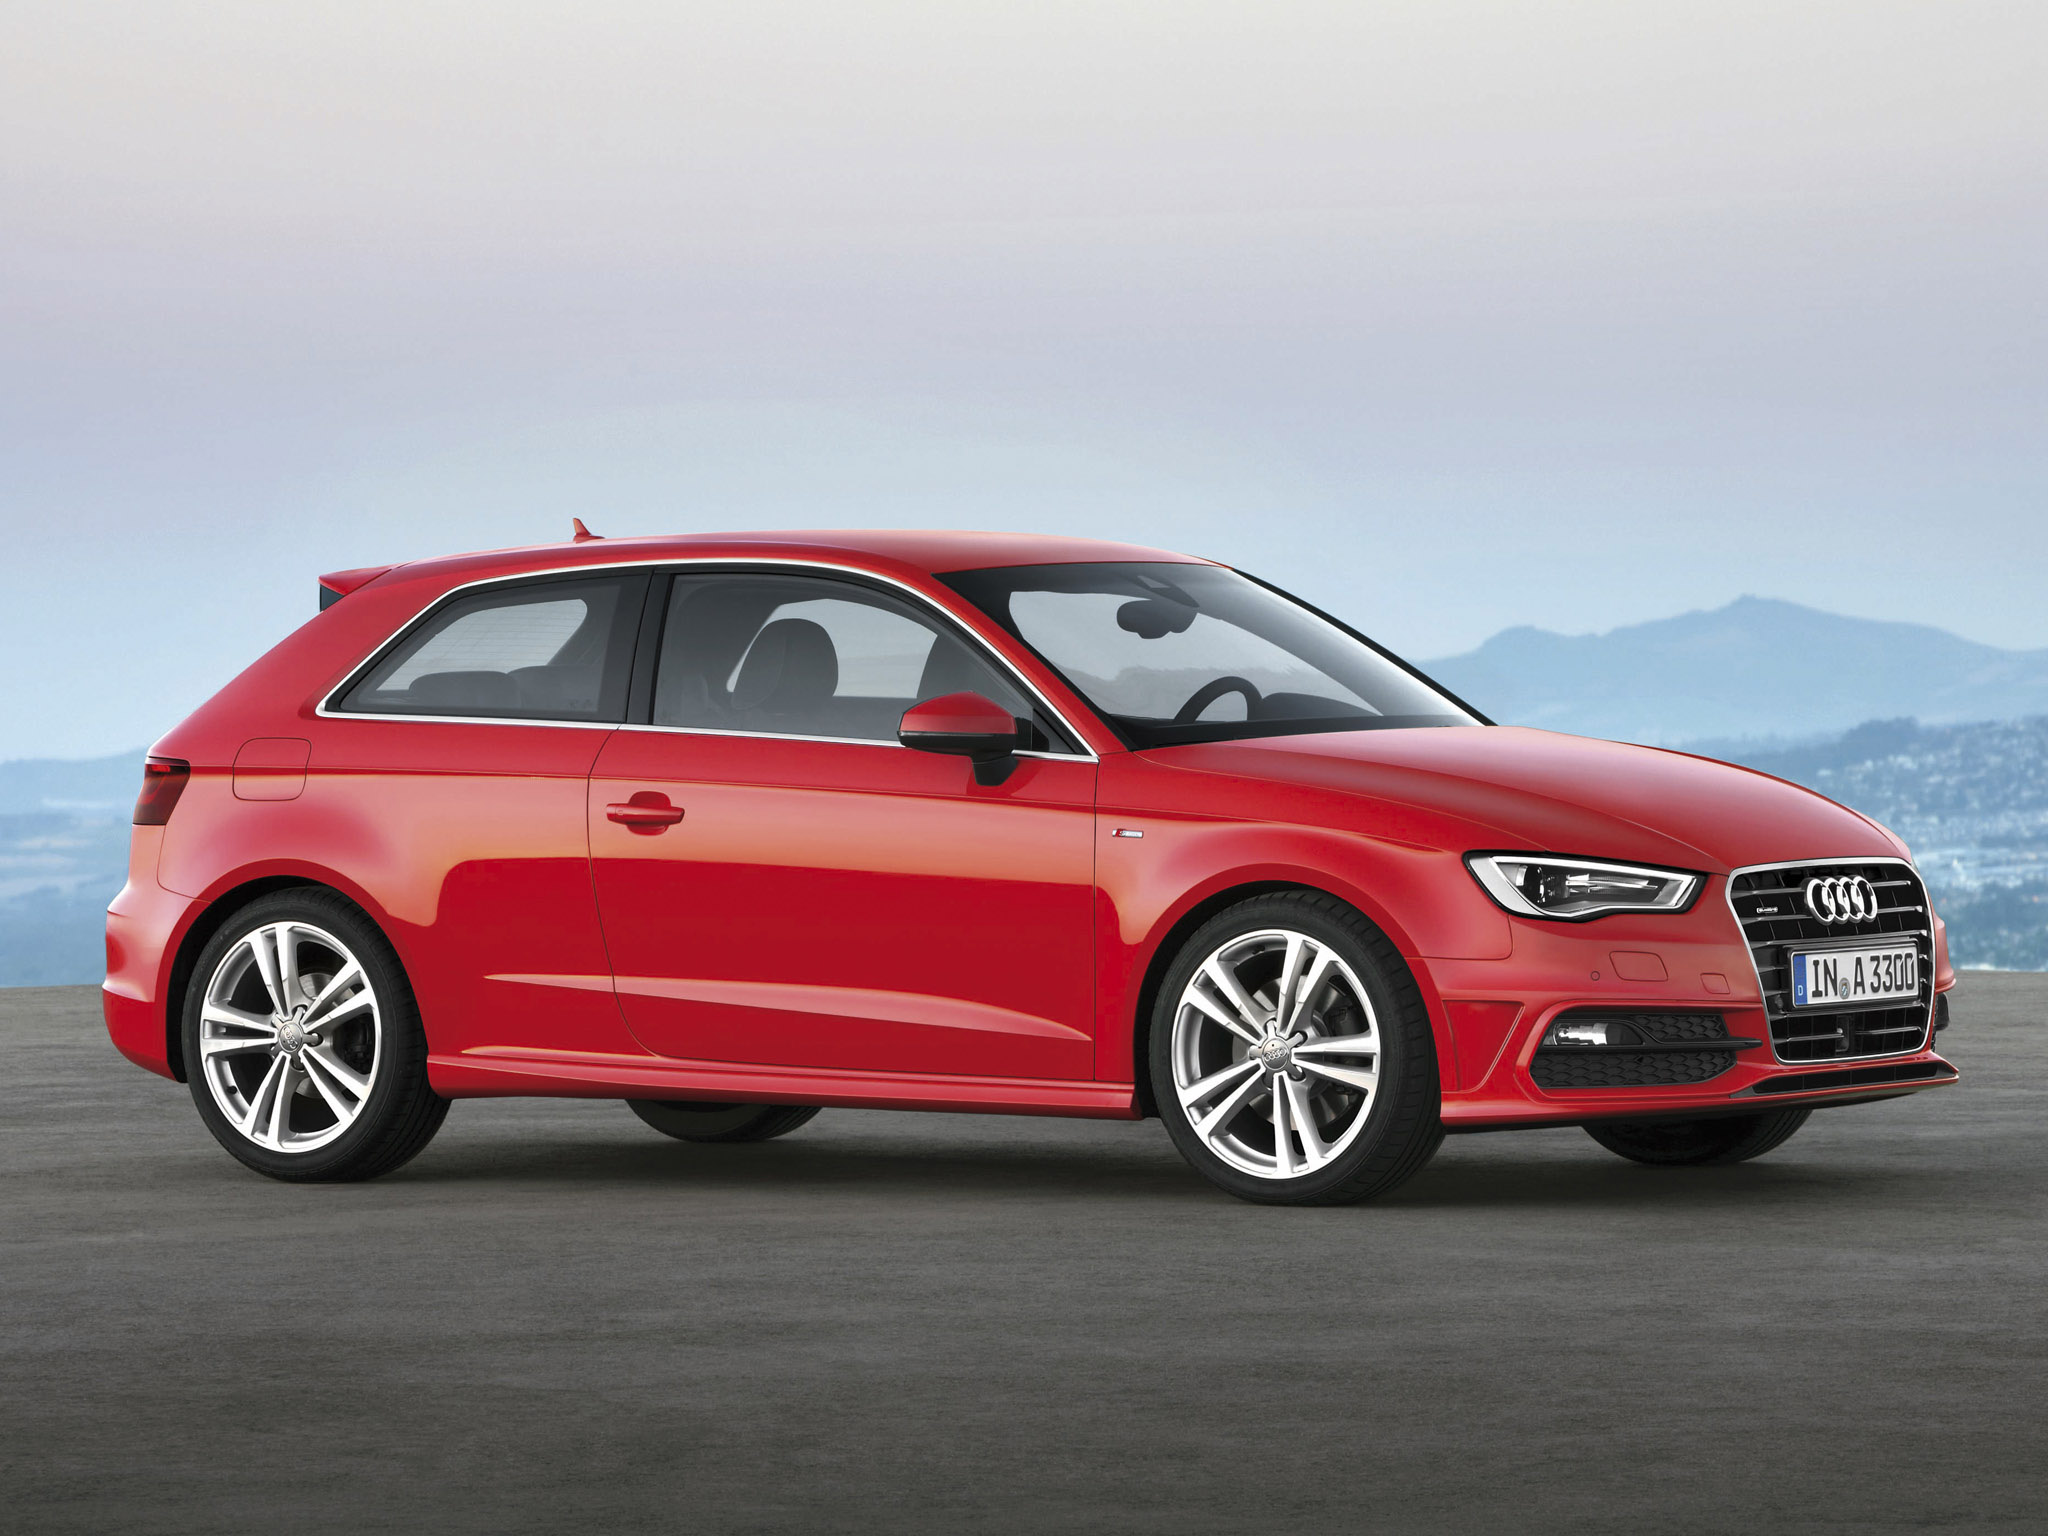 audi a3 1 8t s line 2012 audi a3 1 8t s line 2012 photo 14 car in pictures car photo gallery. Black Bedroom Furniture Sets. Home Design Ideas